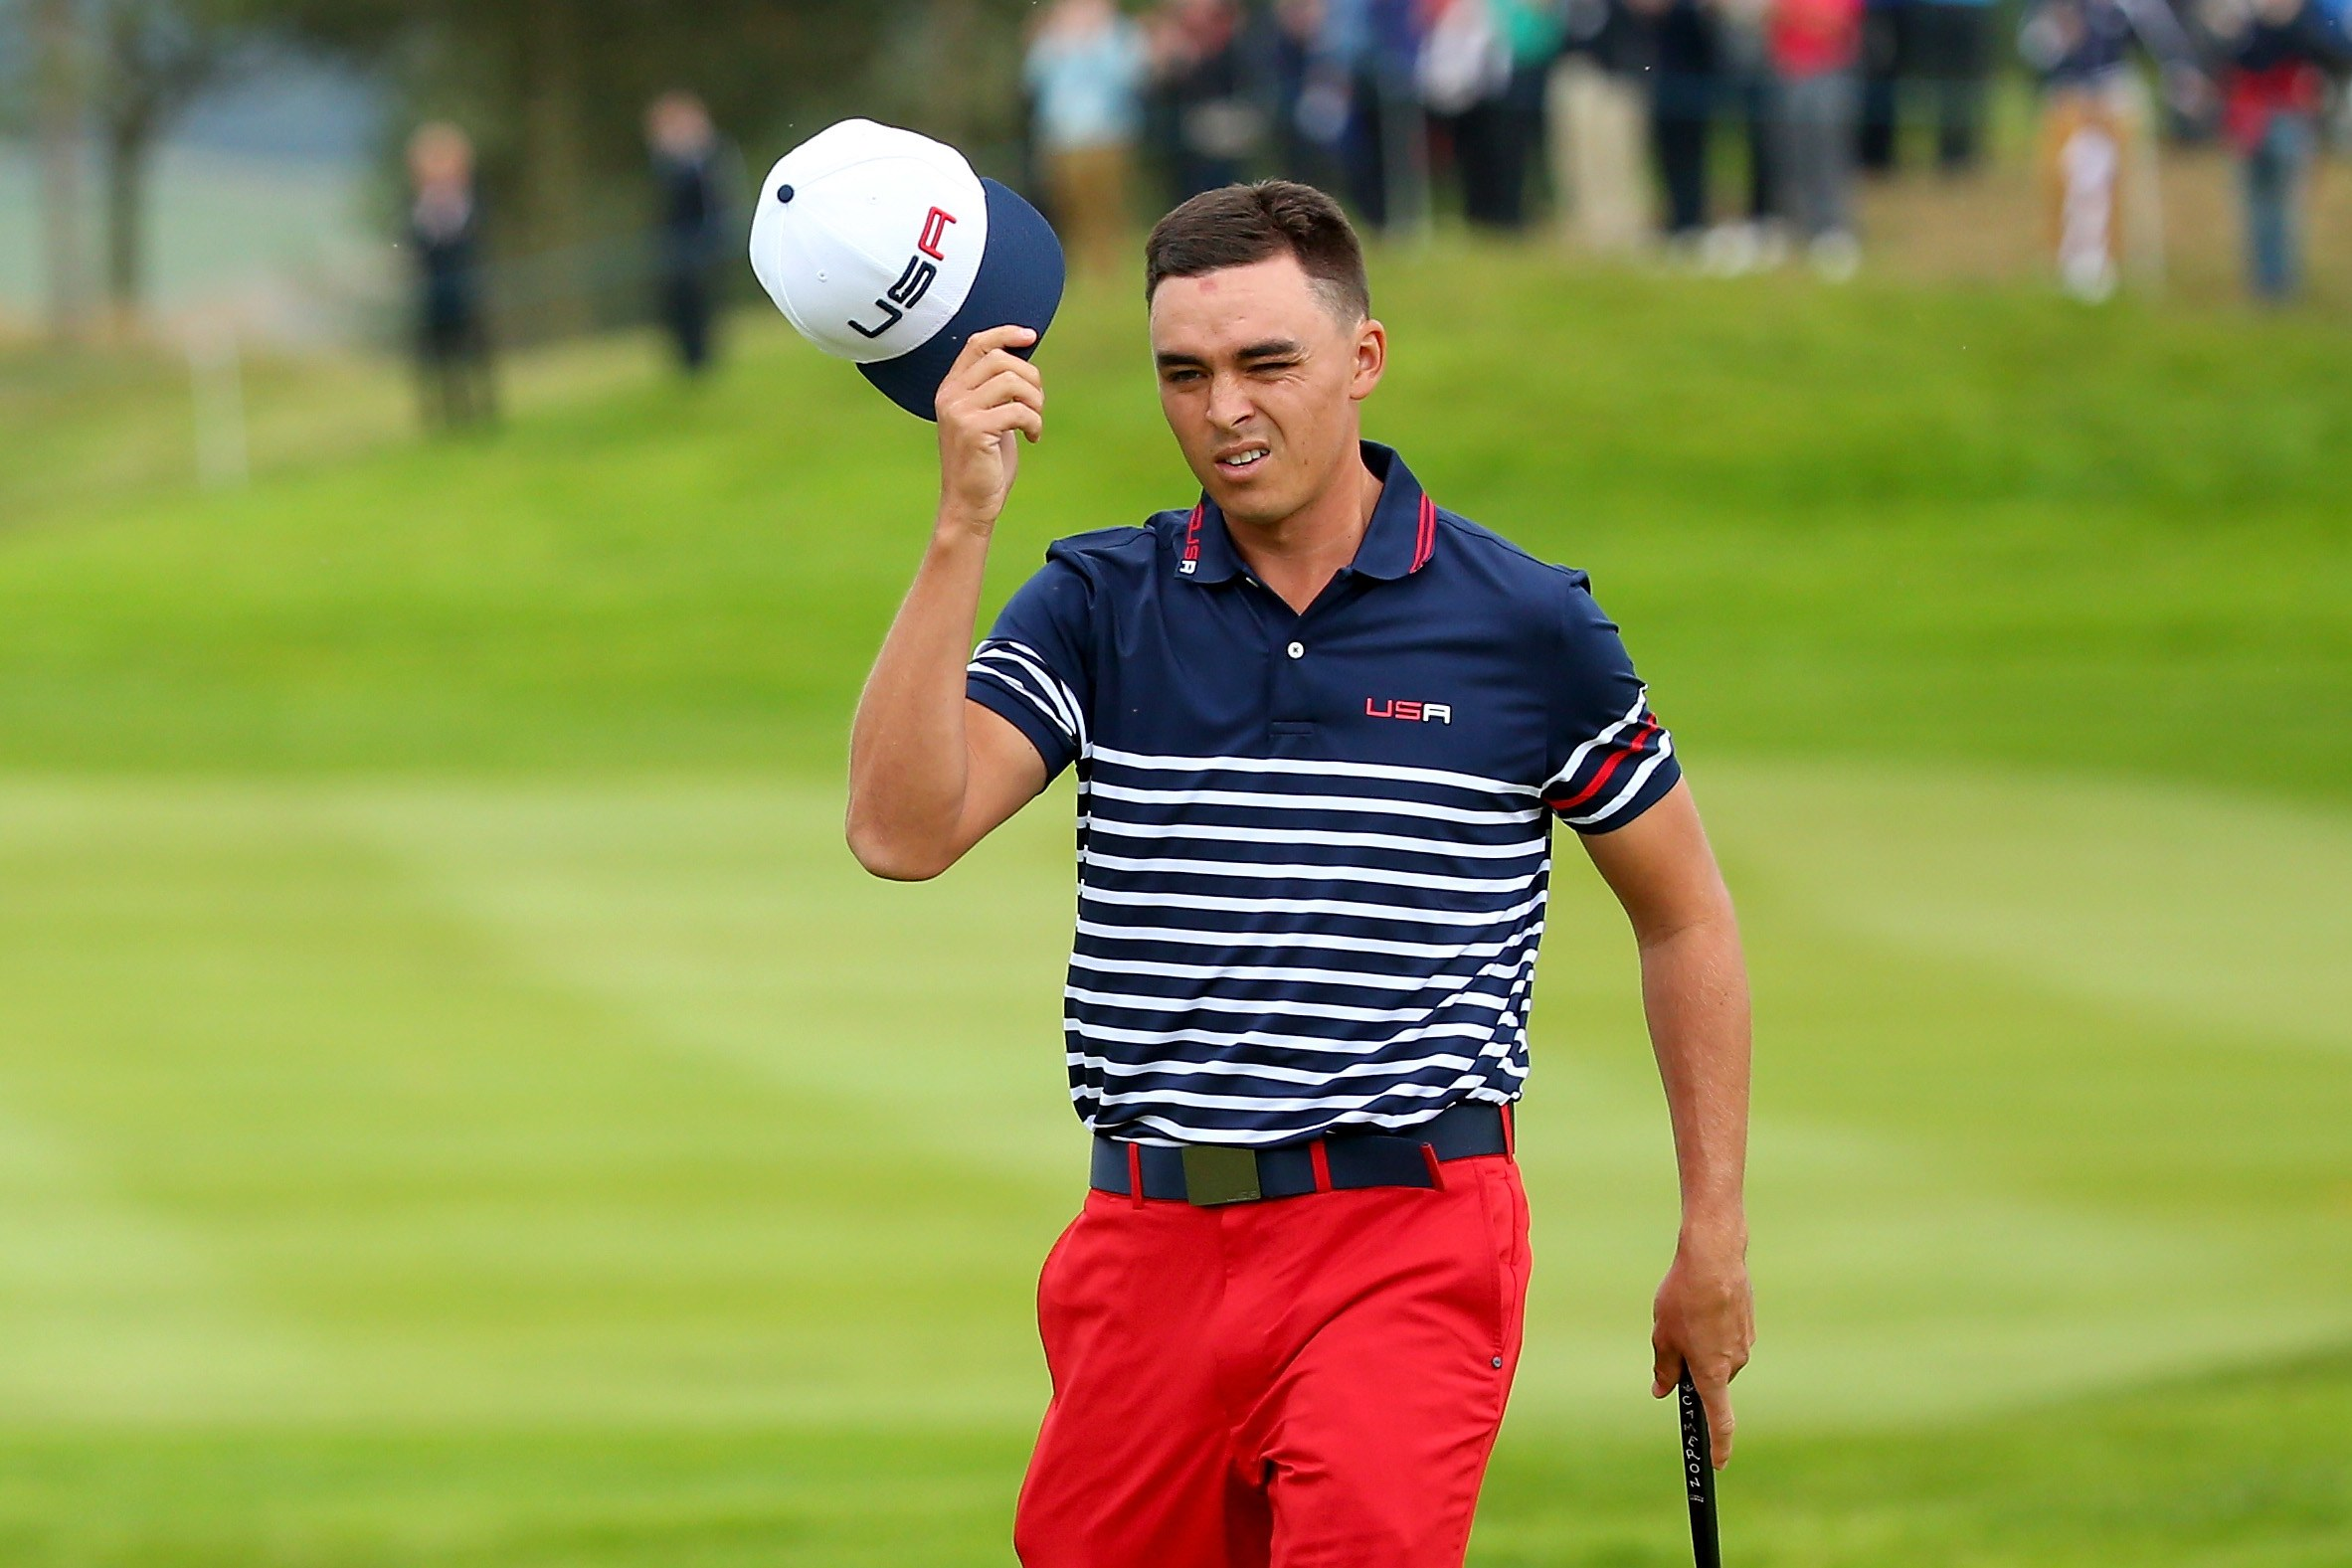 Rickie Fowler Hairstyle